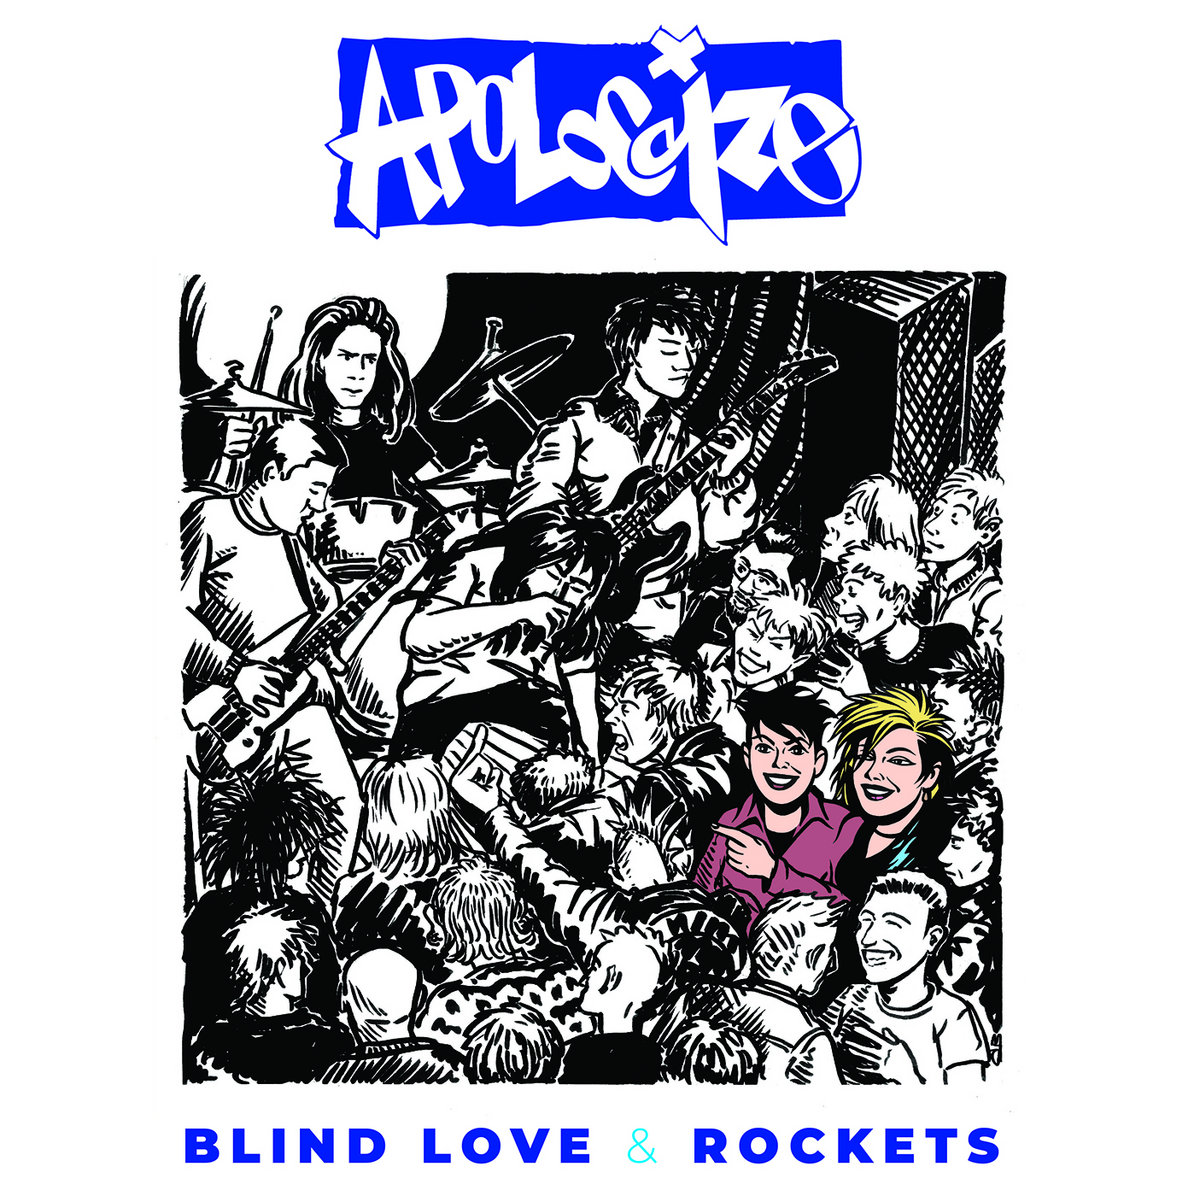 Apologize - Blind Love & Rockets